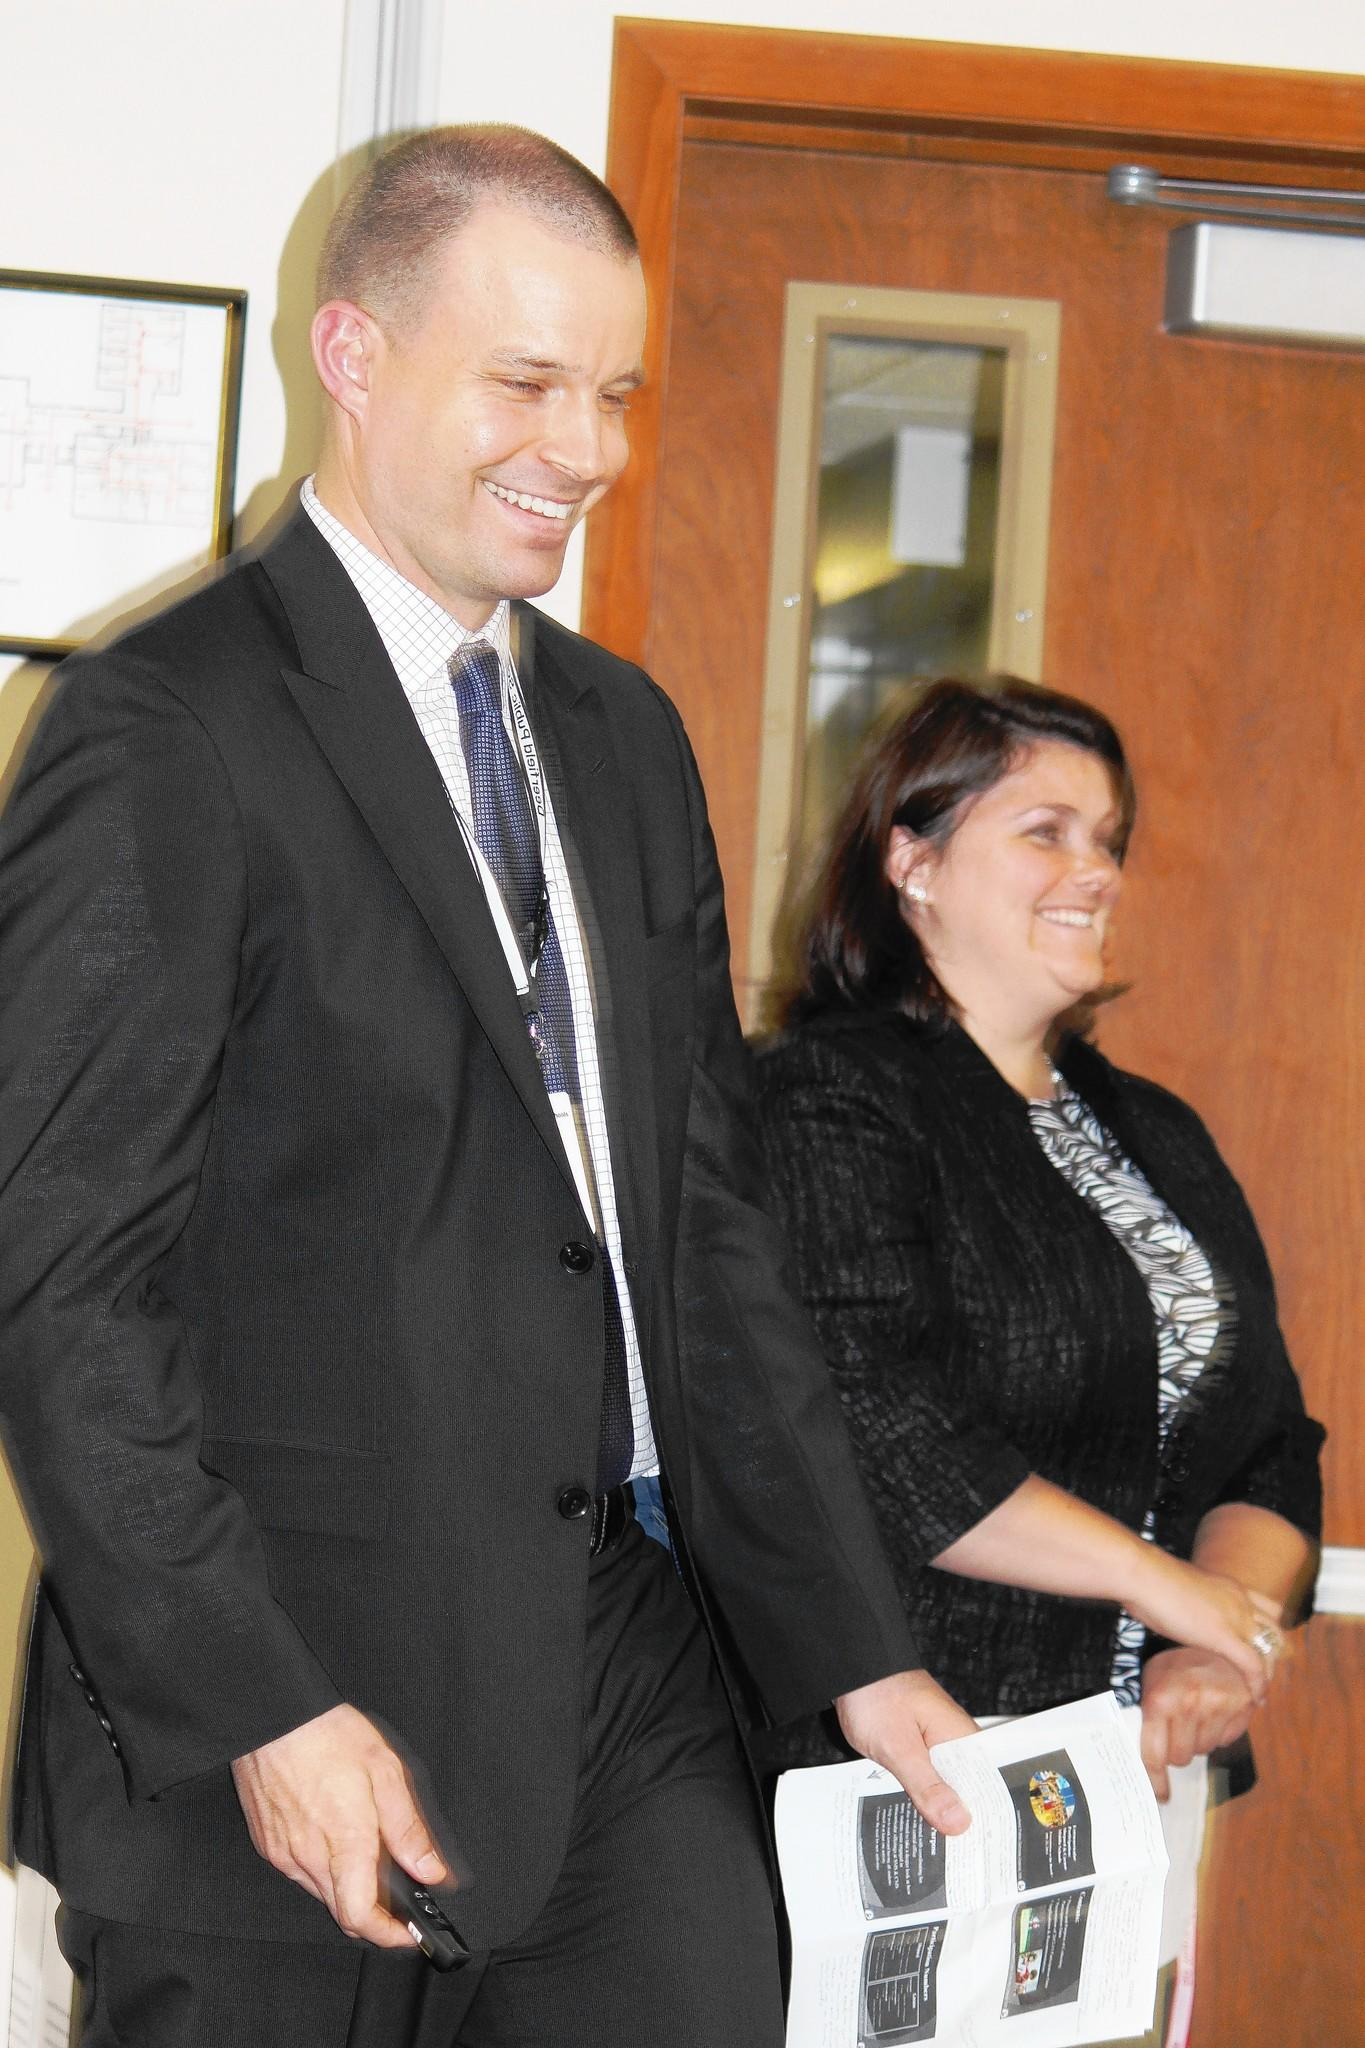 Angela Morretti, assistant principal at Alan B. Shepard Middle School, and John Filippi, assistant principal at Caruso Middle School, were recognized at a recent Deerfield Public Schools Board of Education meeting.